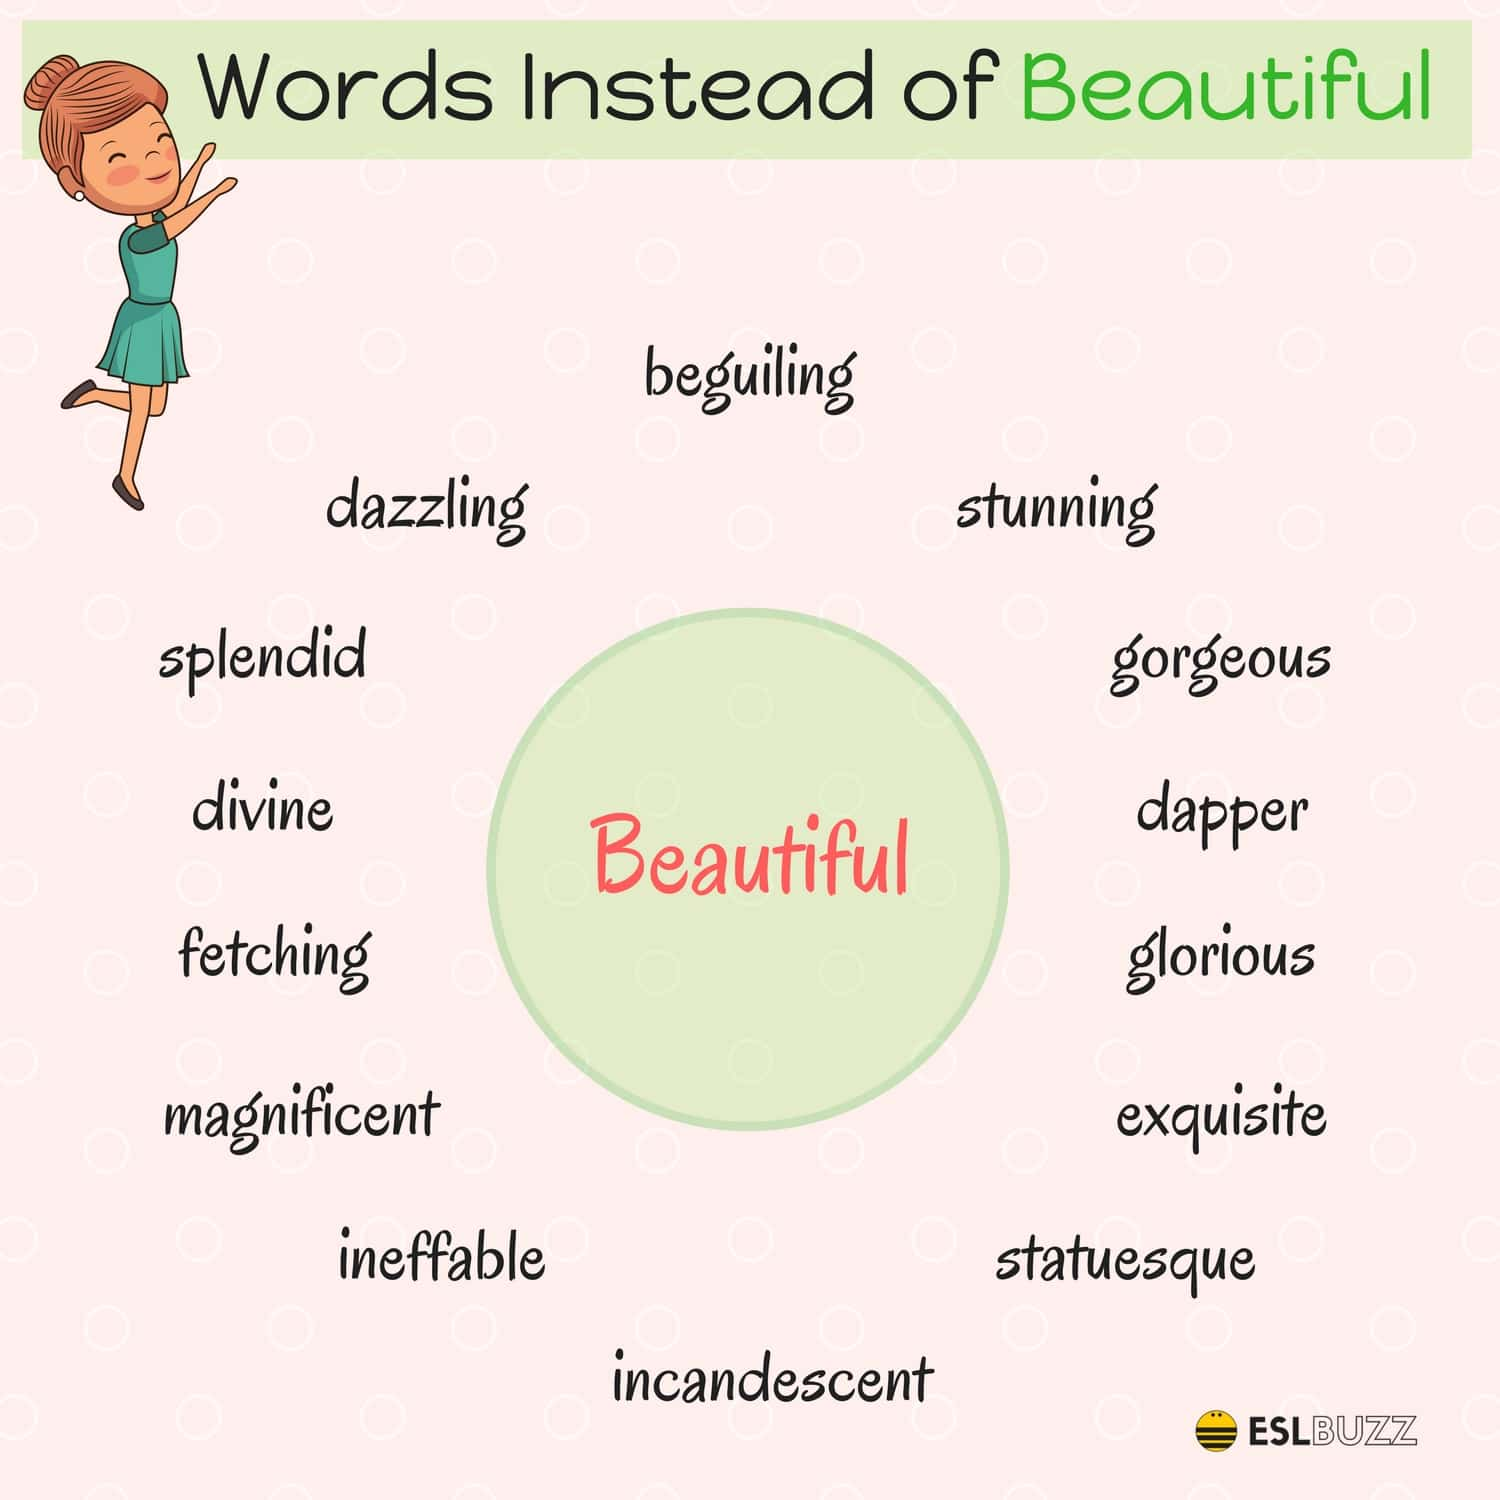 100+ Different Ways to Say BEAUTIFUL 15